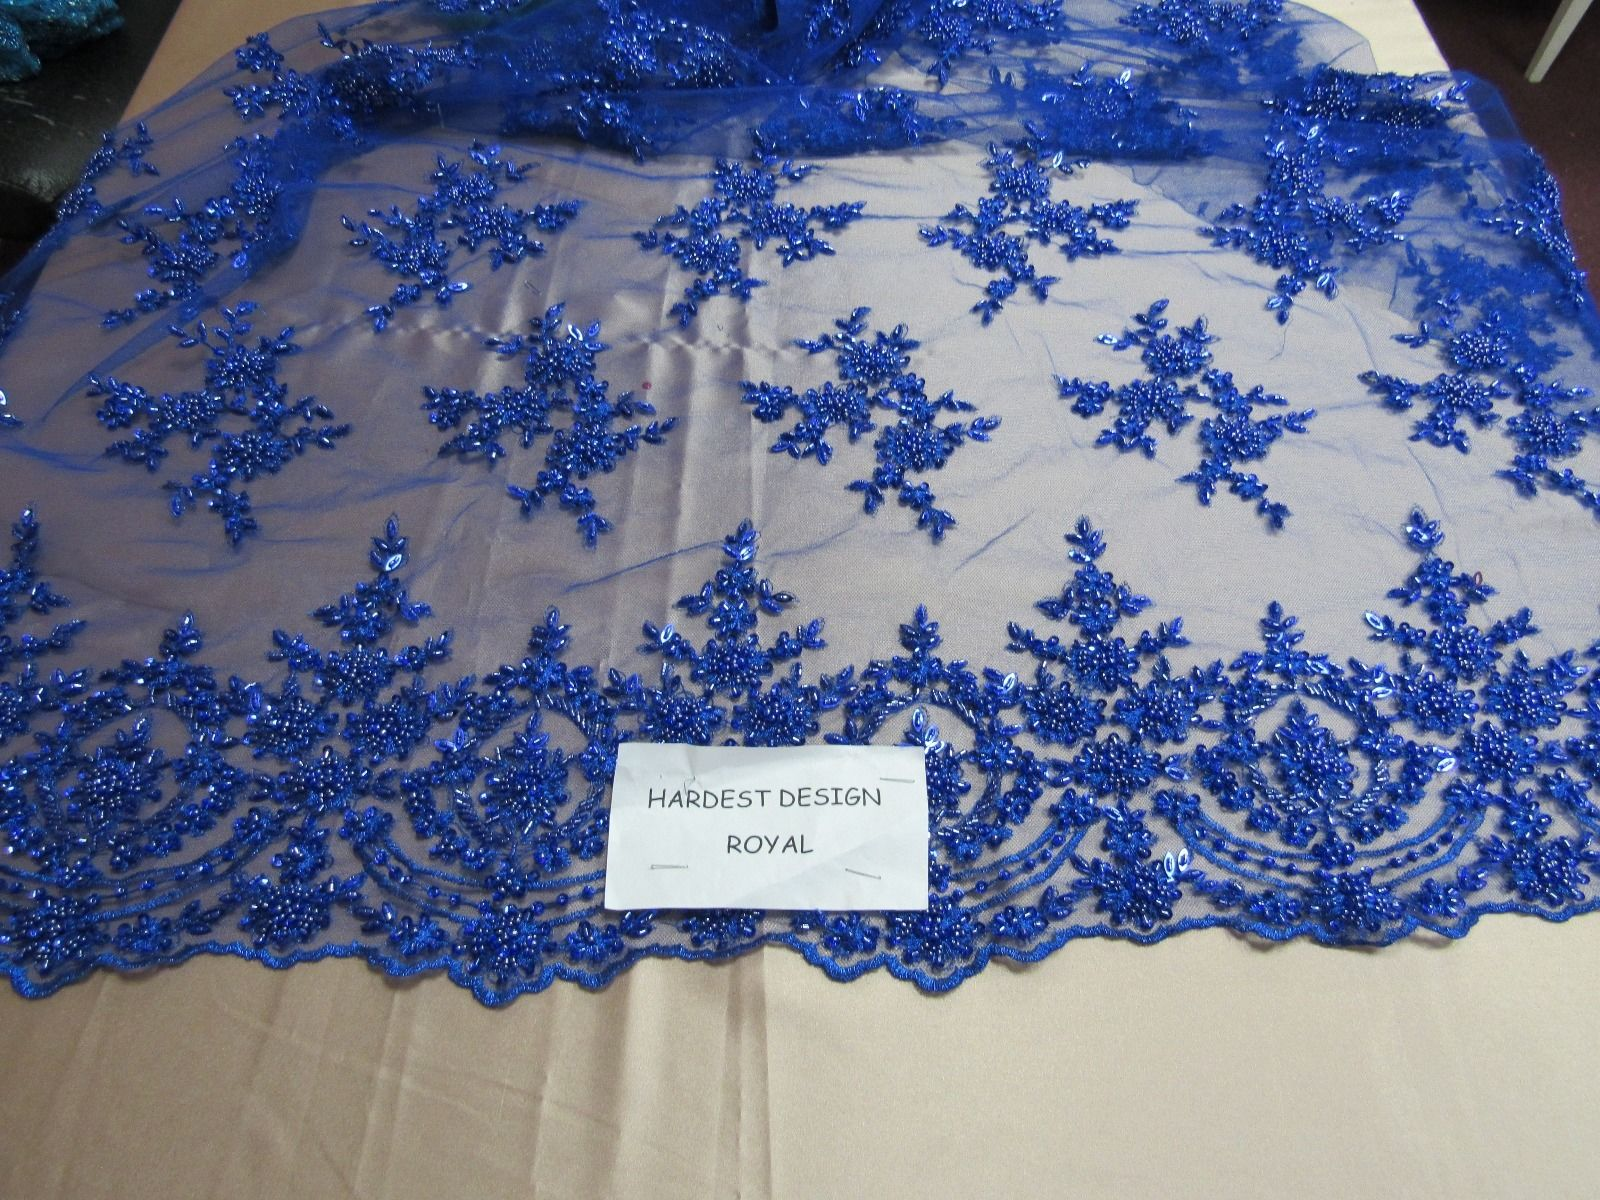 Royalty Bridal luxury wedding beaded royal mesh lace fabric. Sold by the yard - KINGDOM OF FABRICS